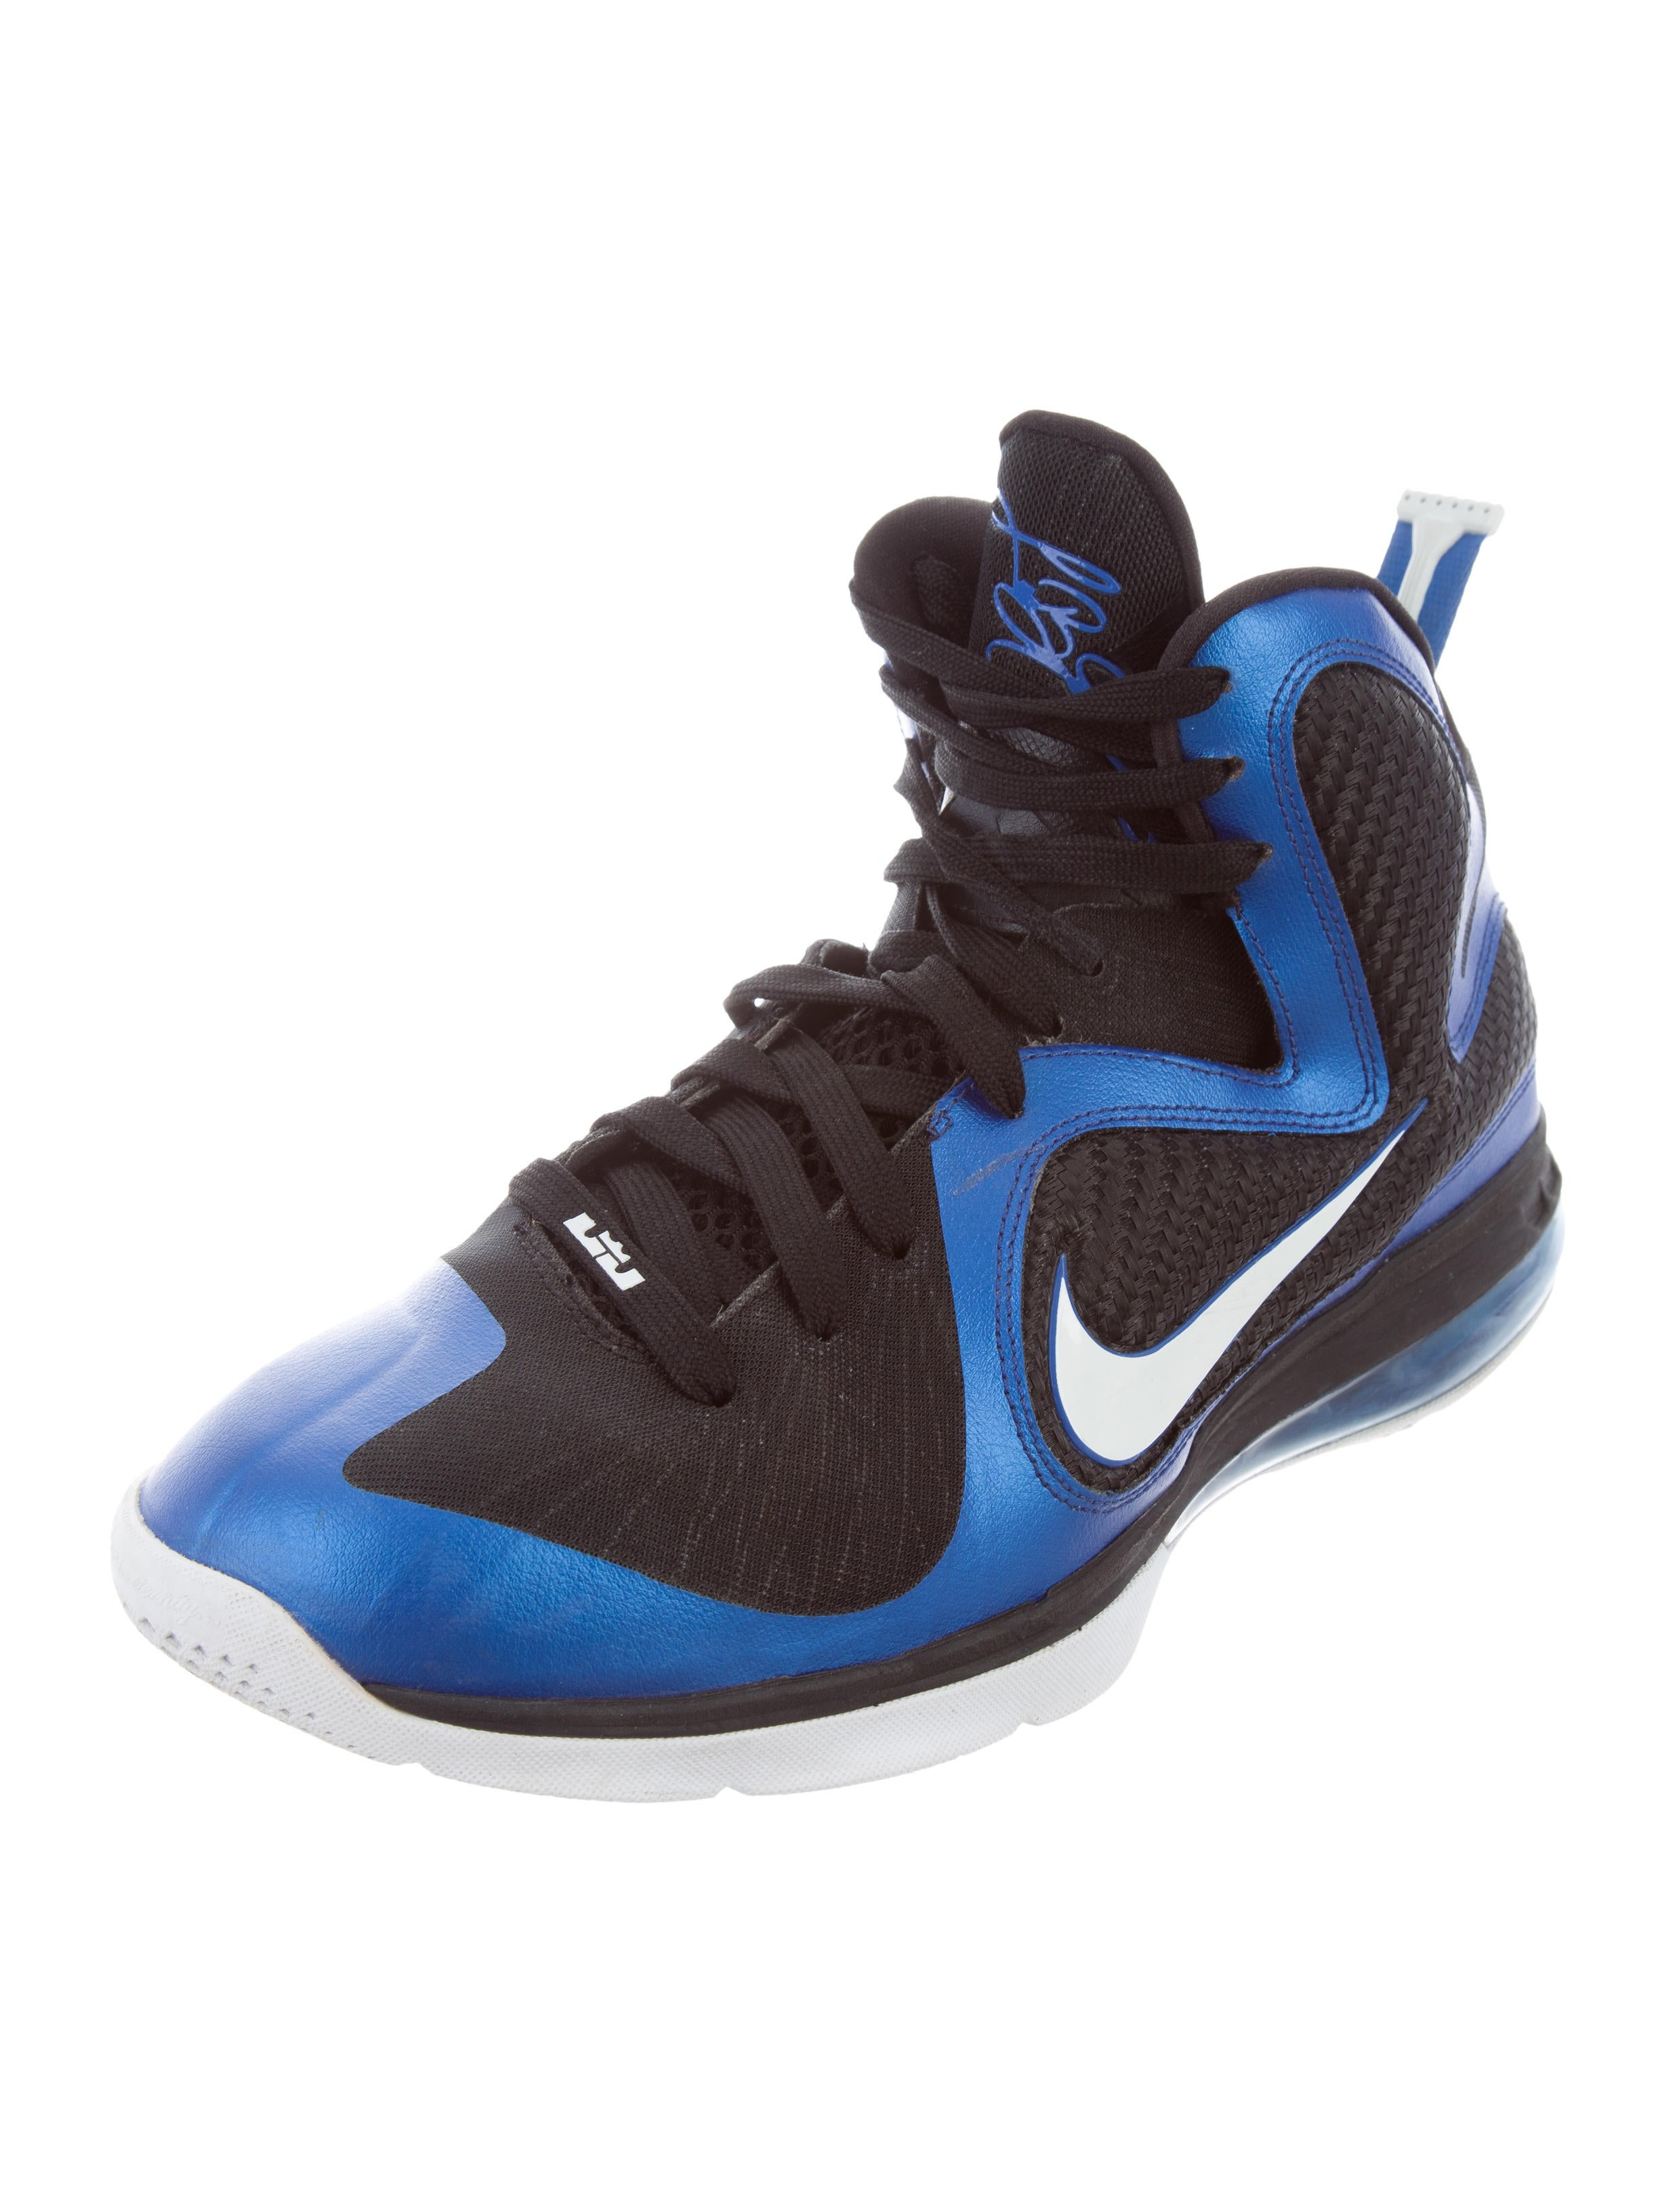 ... LeBron 9 Kentucky Sneakers lebron 9 varsity royalwhite-black kentucky  NIKE ...